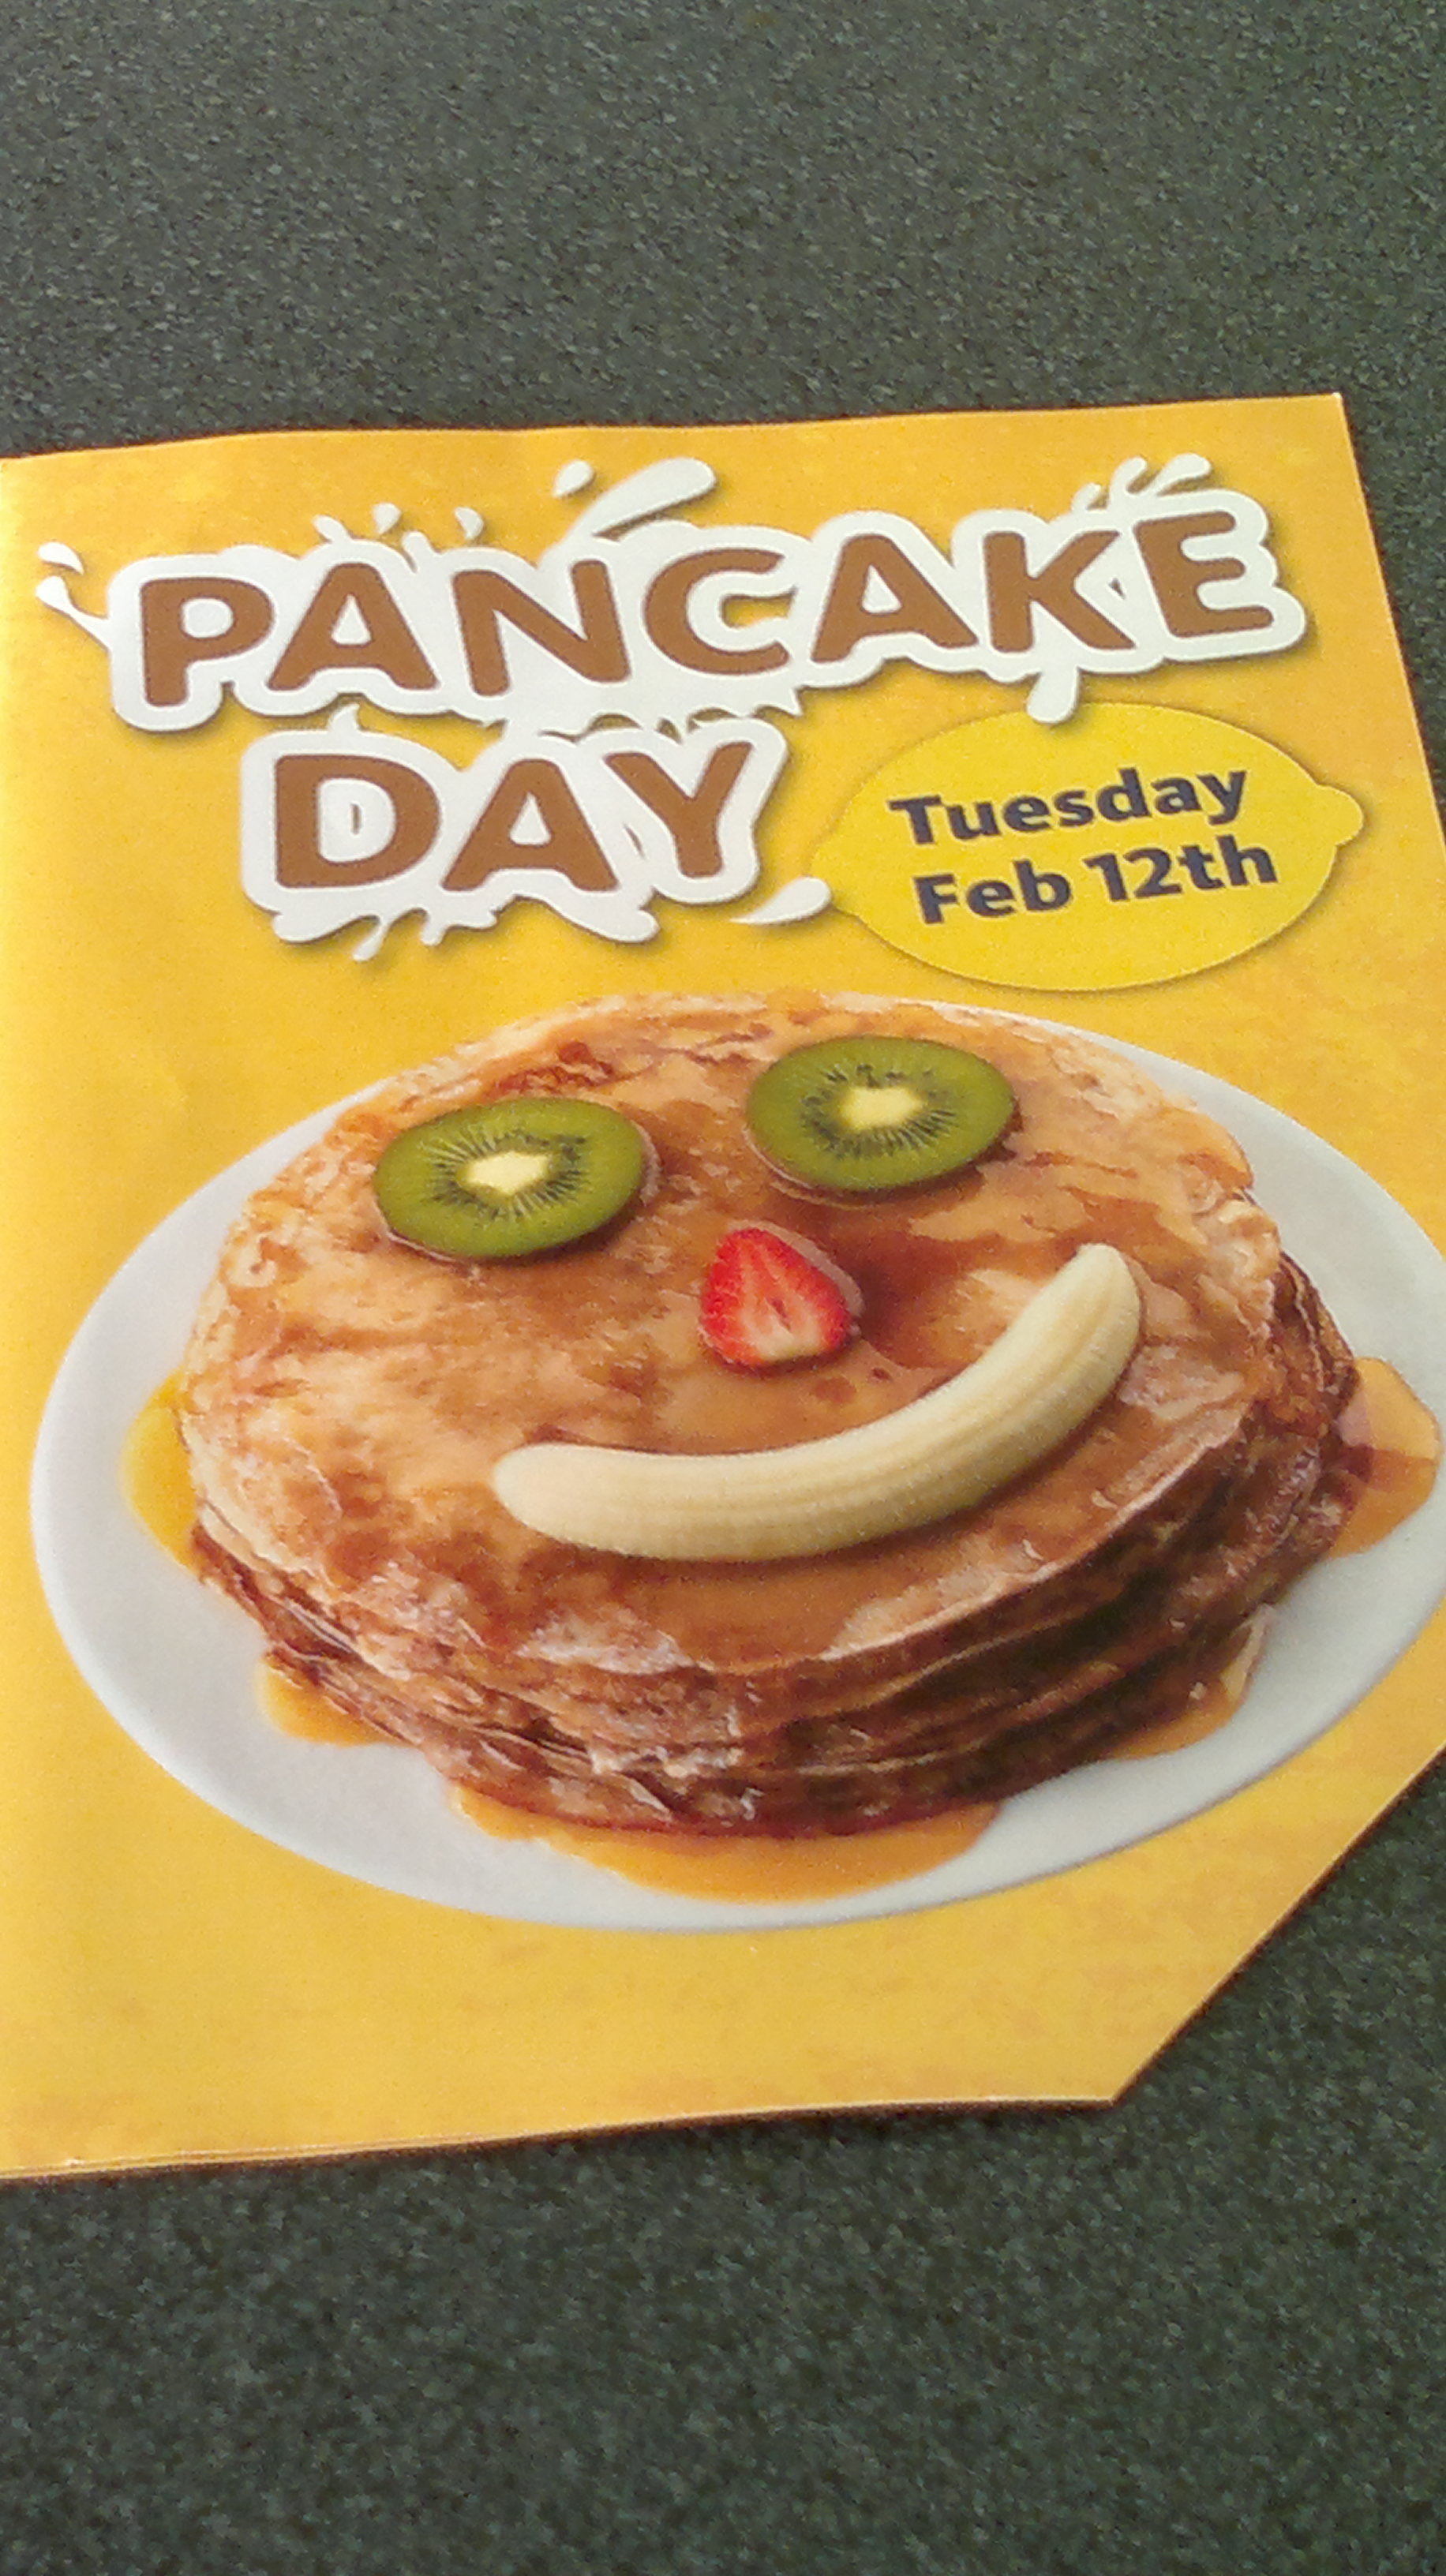 Shrove Tuesday, also known as Pancake Day in Britain